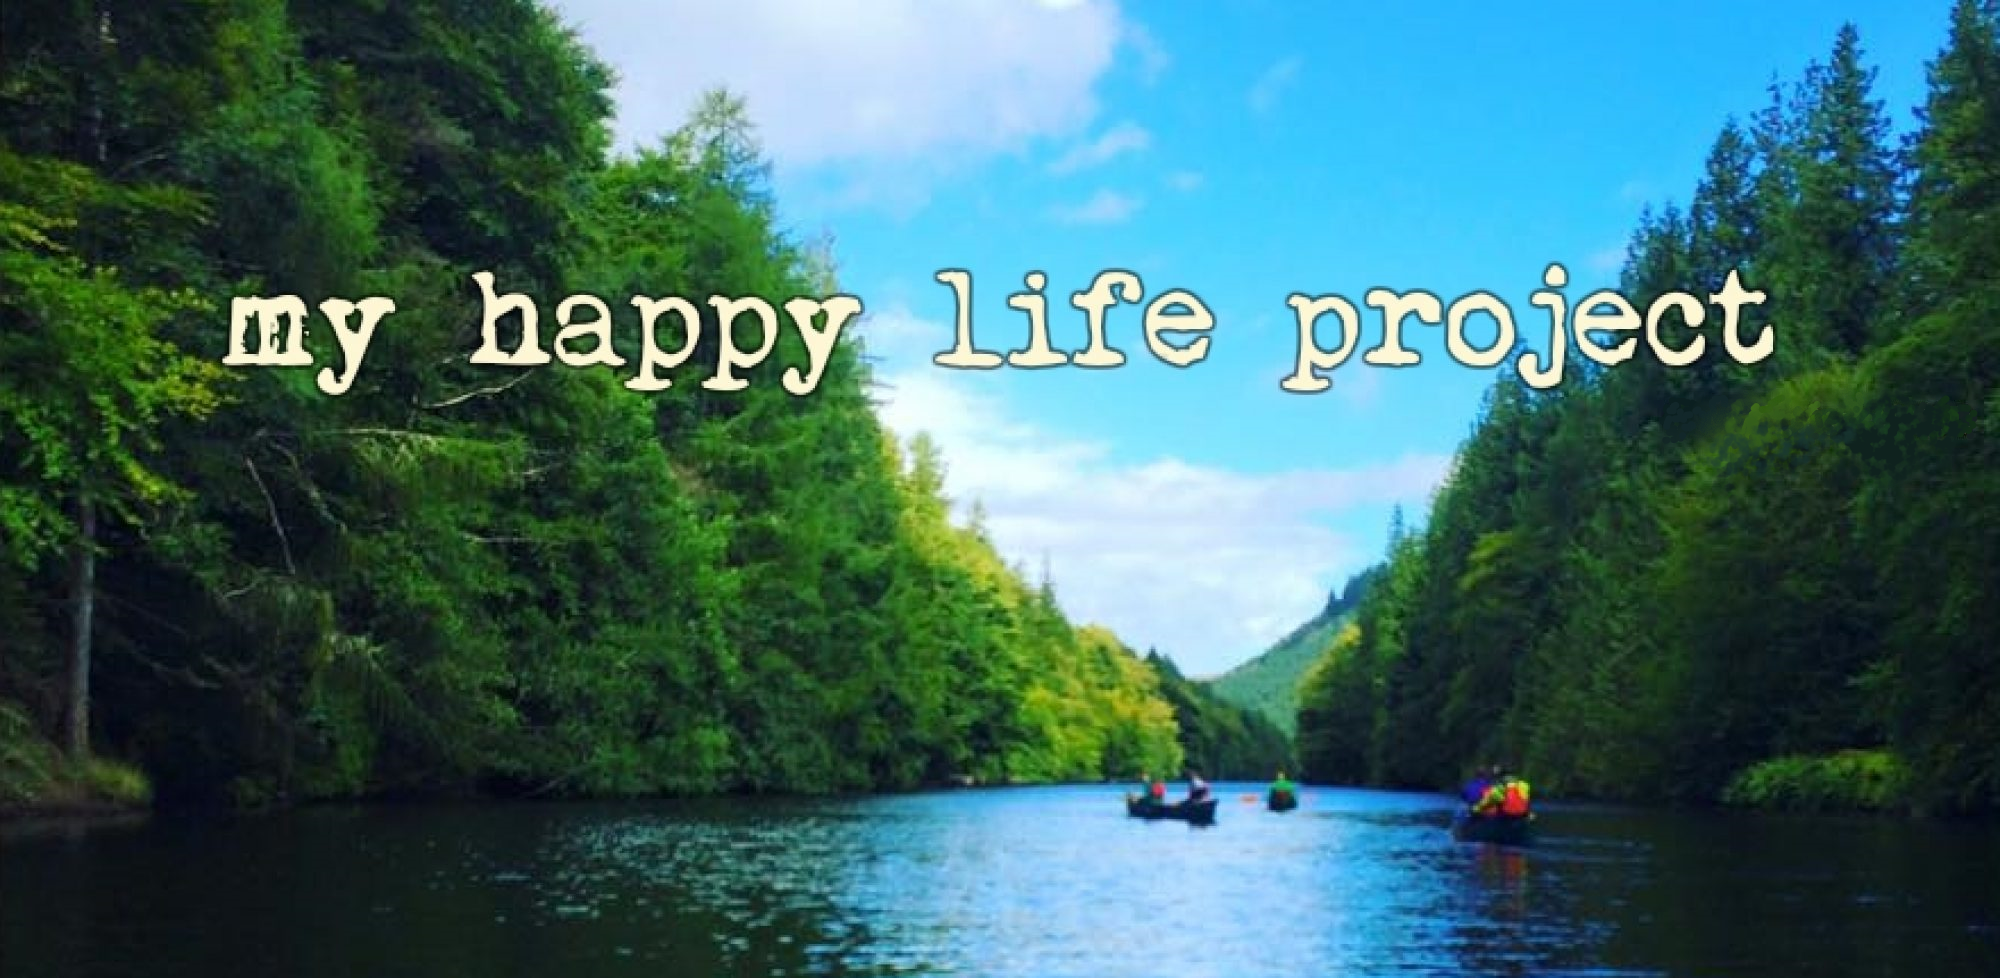 my happy life project